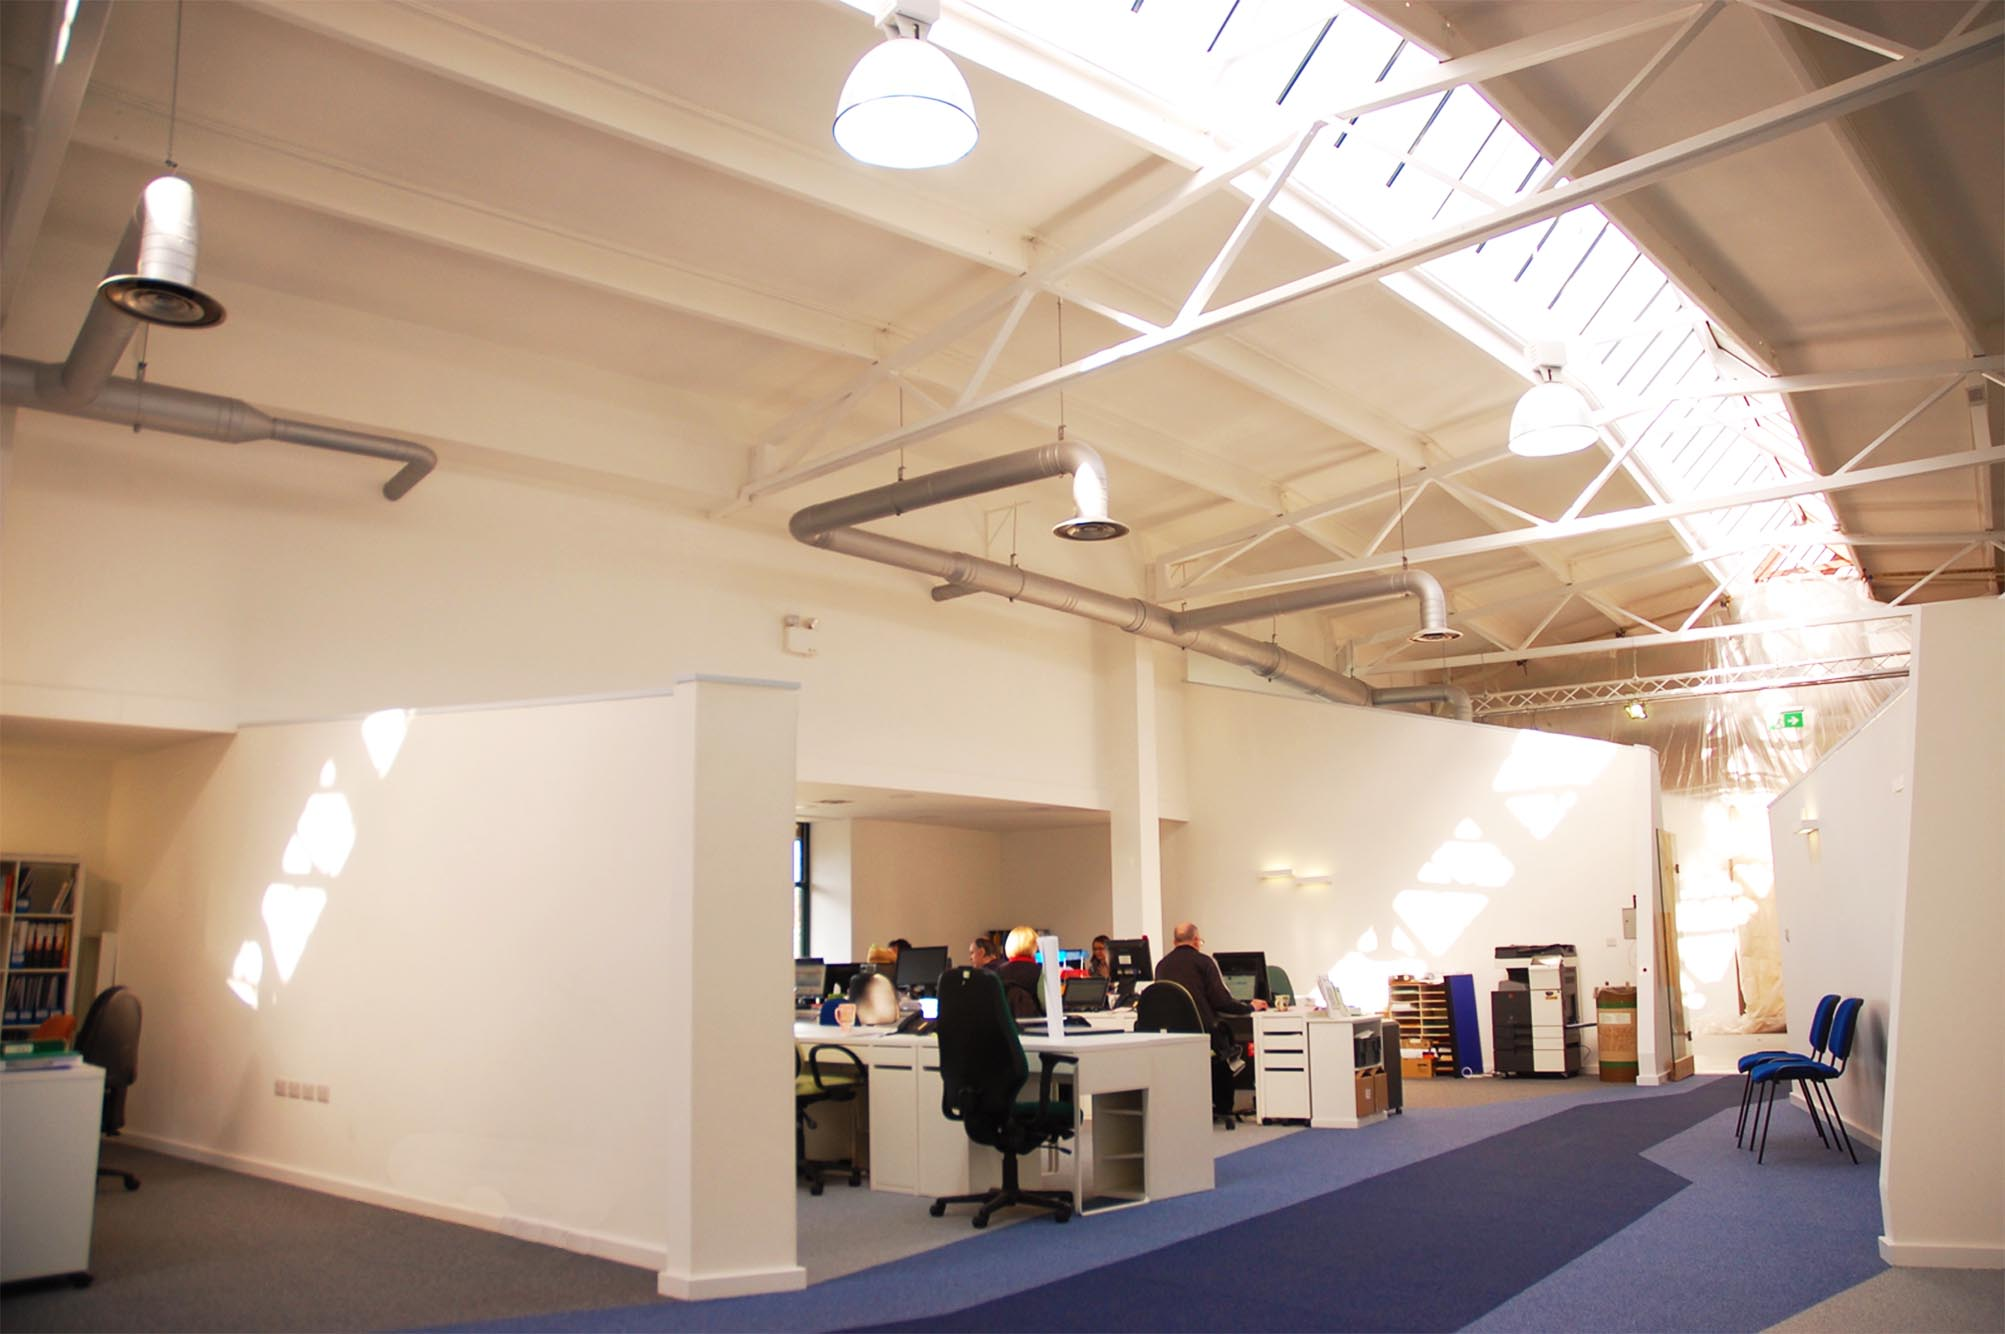 What was a dingy warehouse is transformed into a generous, clean, energising place to work.